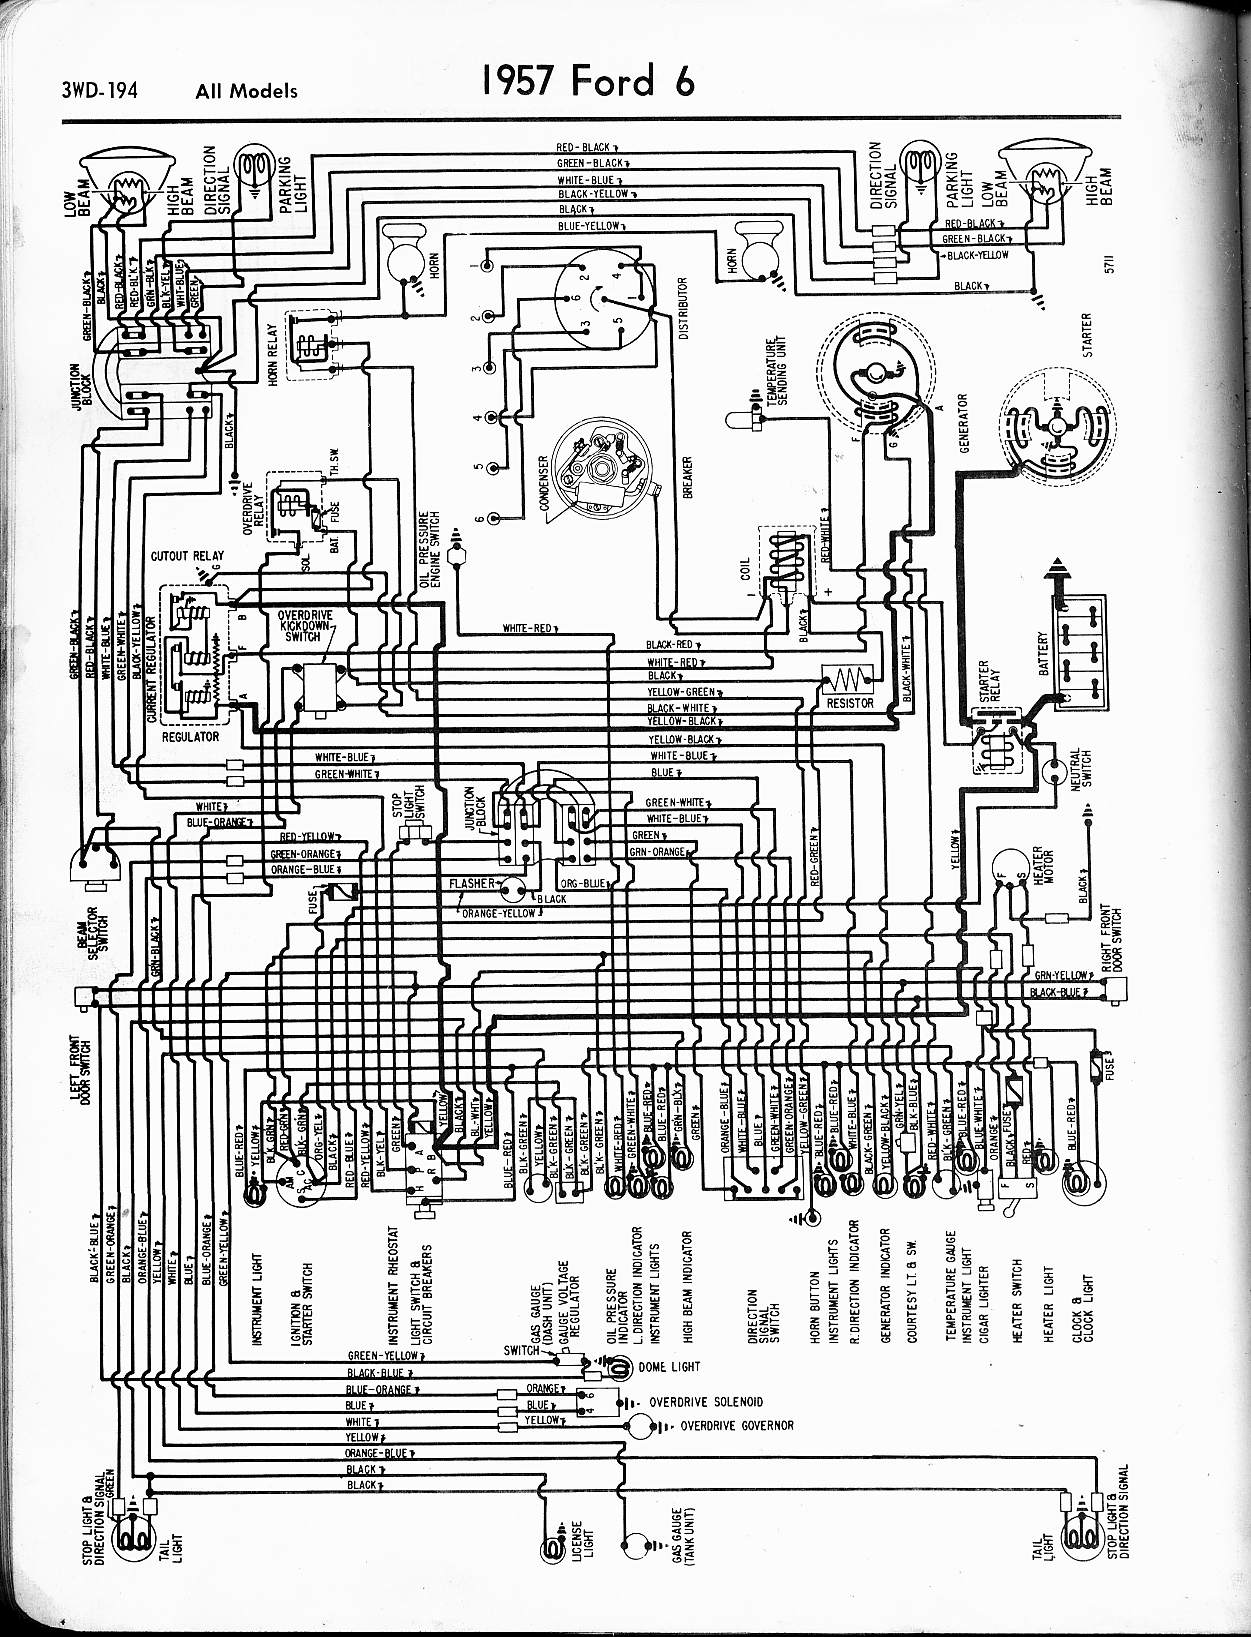 hight resolution of 1980 ford thunderbird wiring diagram wiring diagram third level 1956 ford f100 wiring diagram 1958 f100